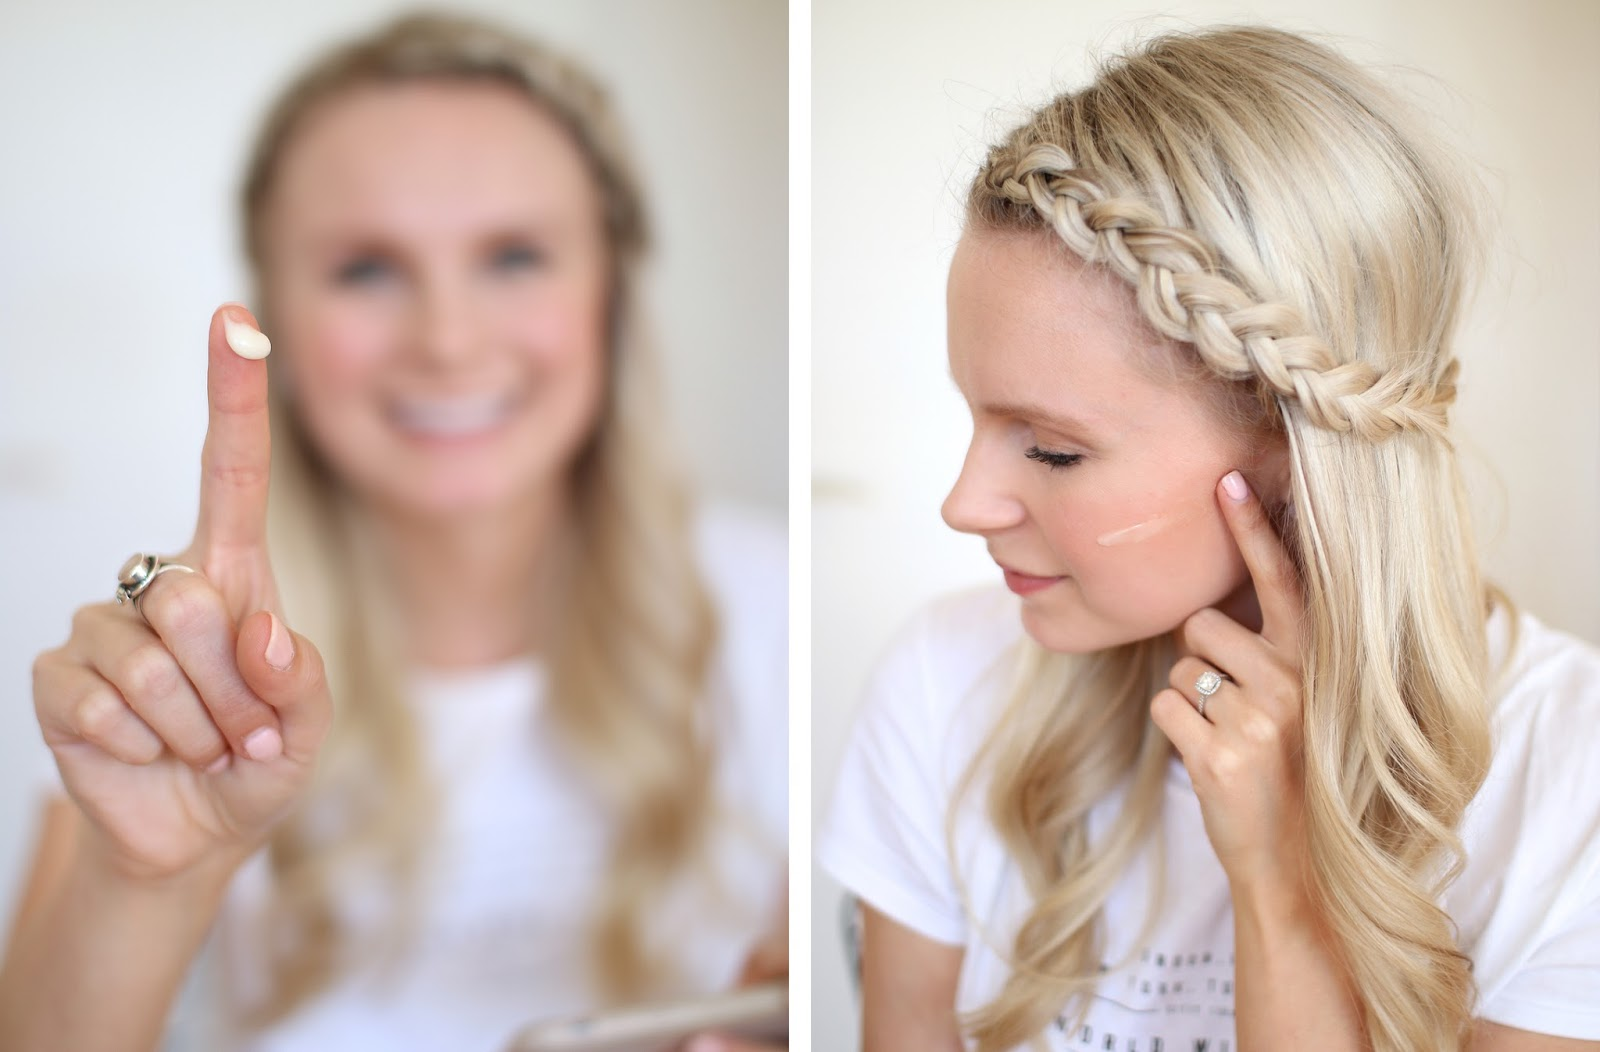 blonde girl with small braid in the front of her hair demonstrates how to apply murad skincare products